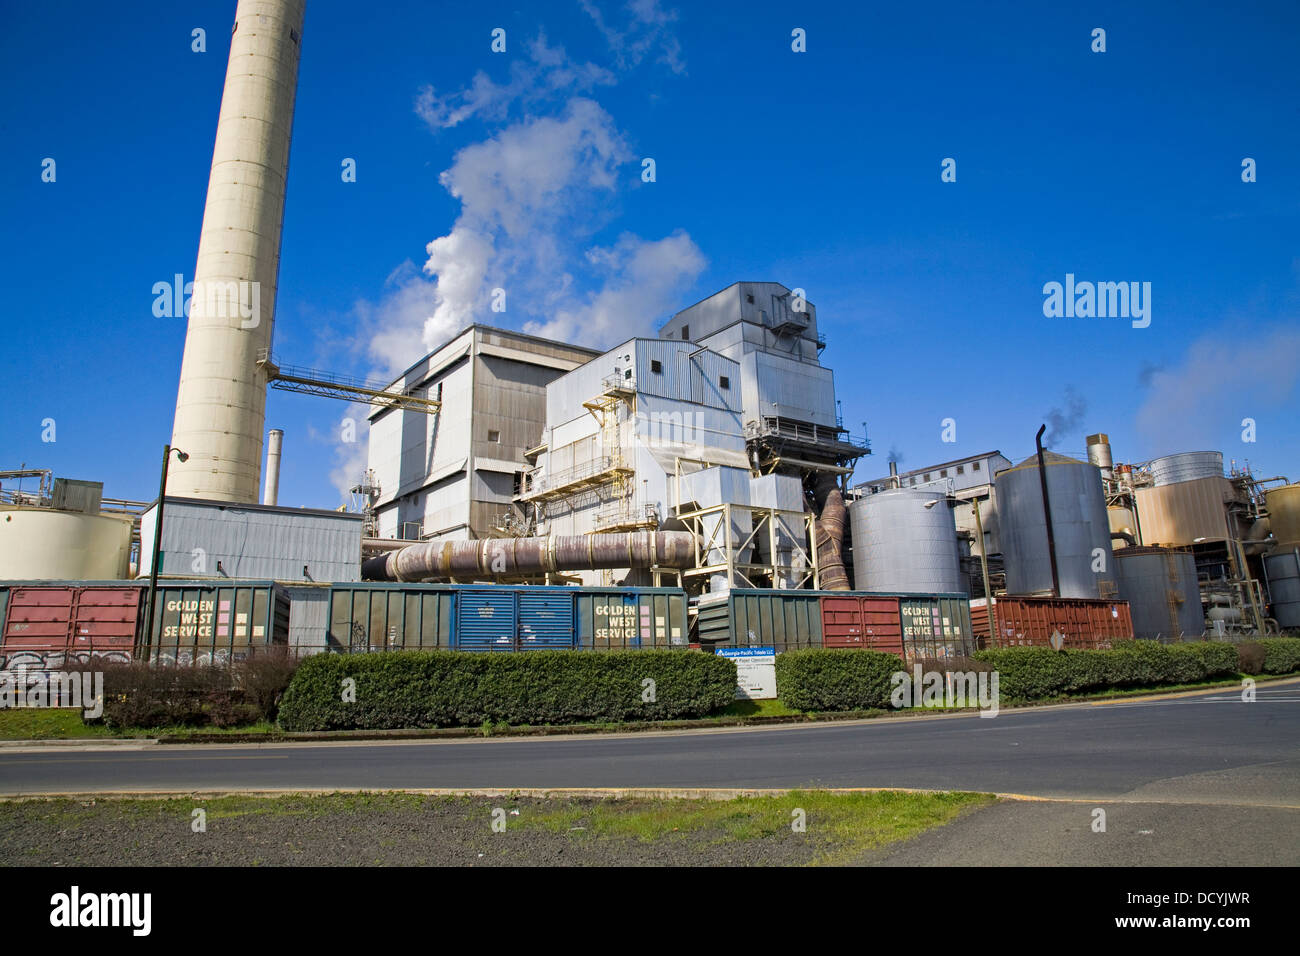 A large Georgia Pacific pulp and paper mill along the Yaquina River in Toledo, Oregon - Stock Image